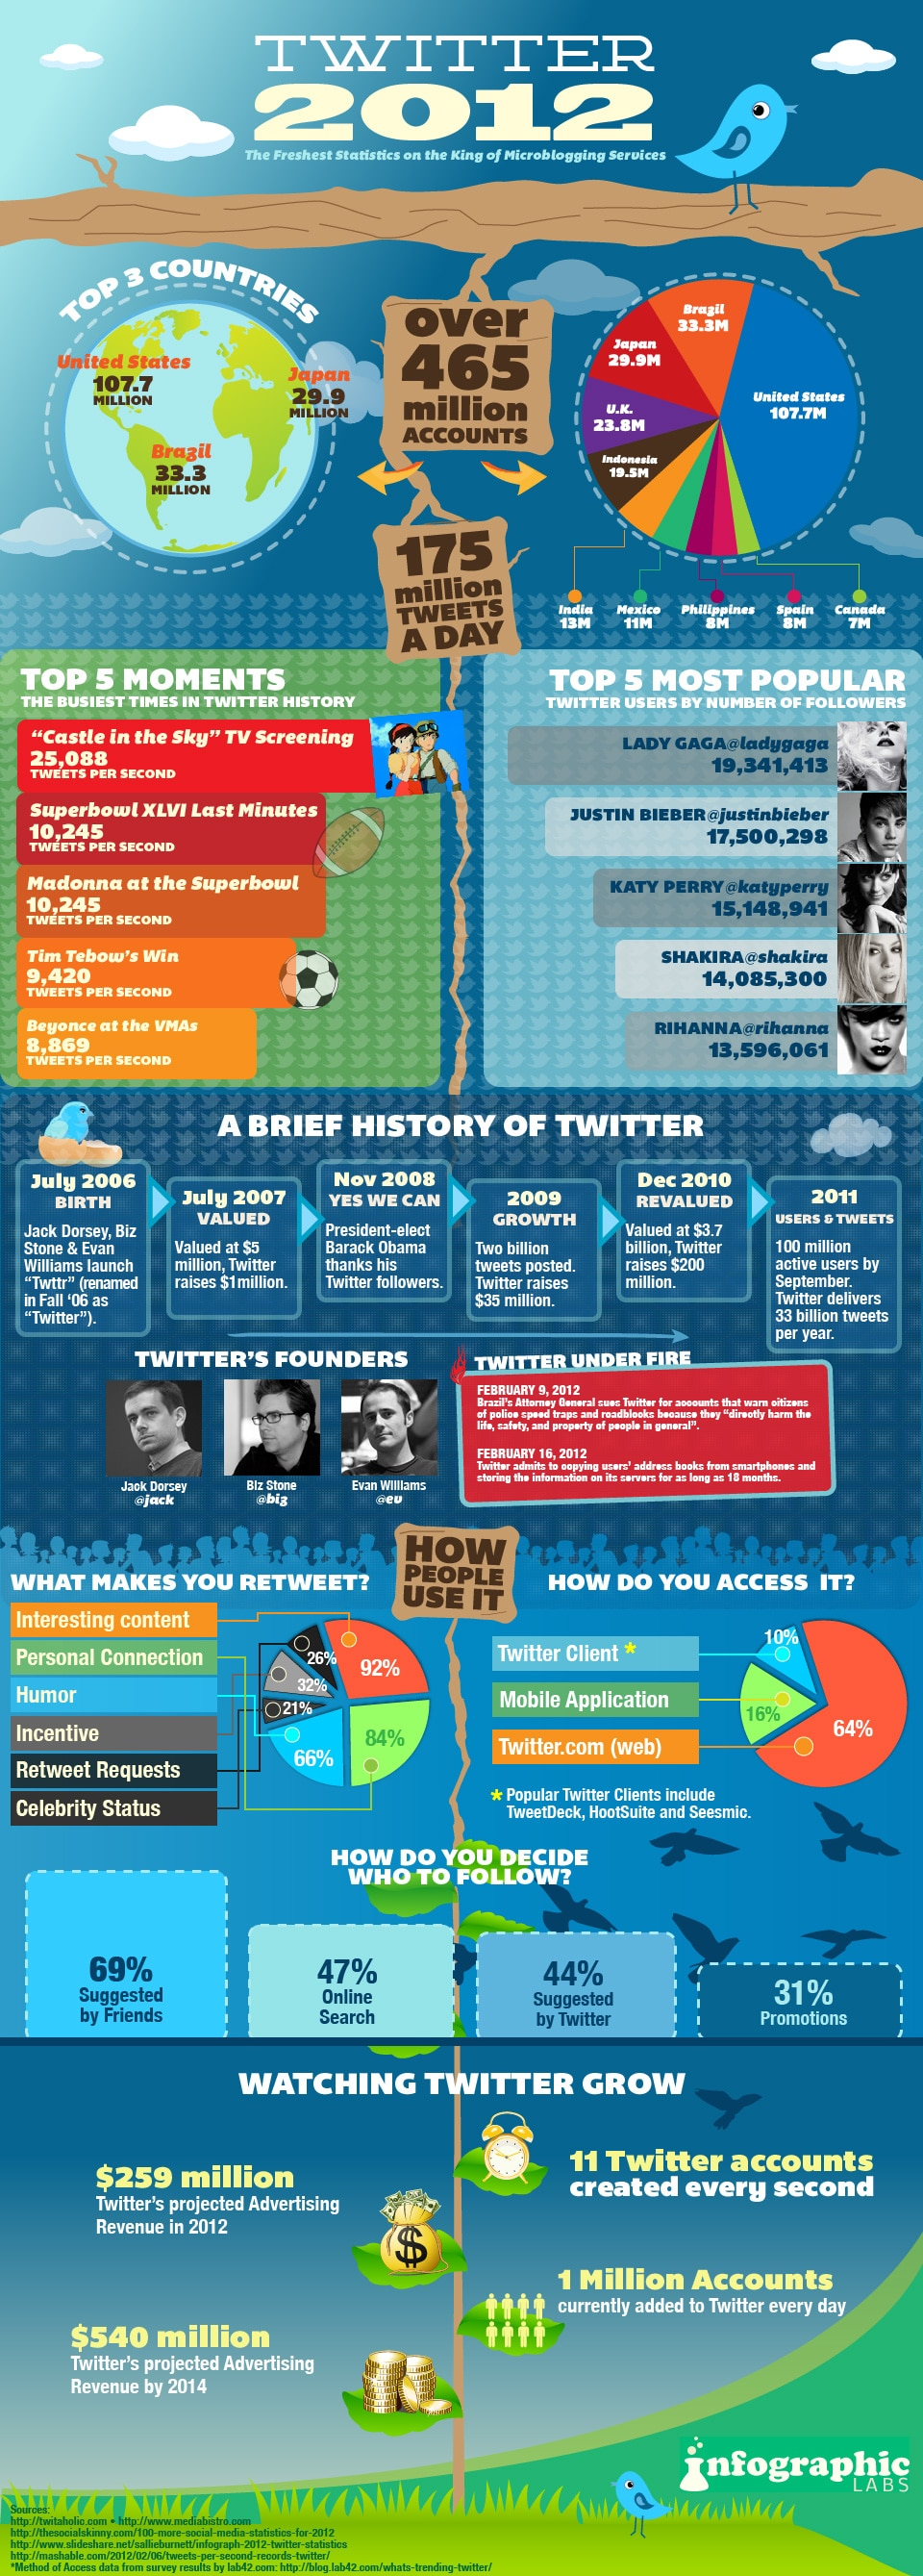 Twitter 2012: The Projected Stats & Facts [Infographic]